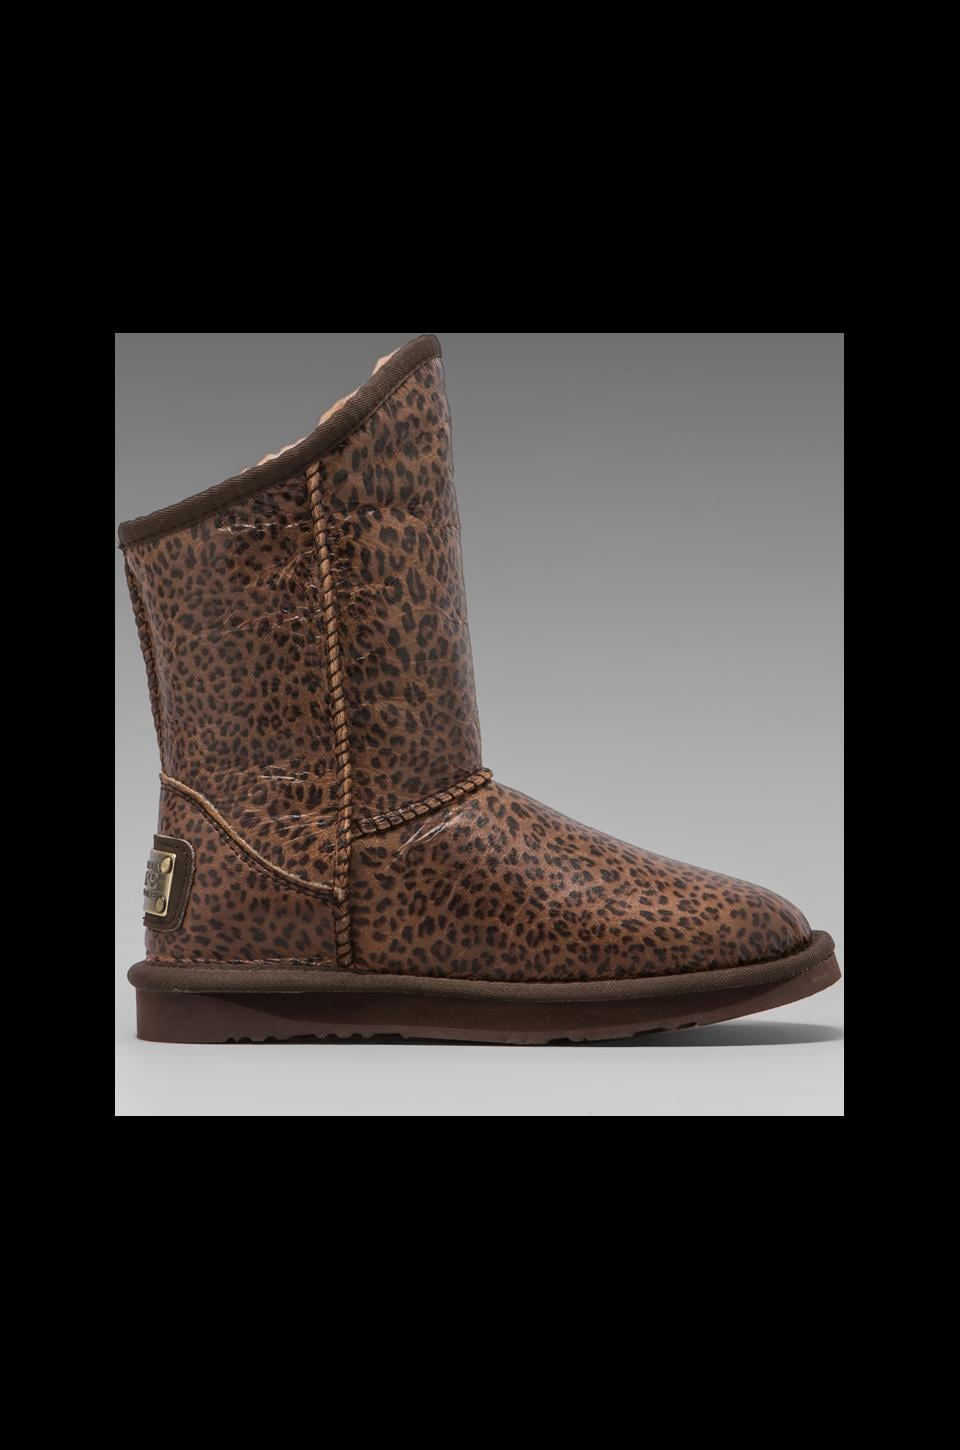 Australia Luxe Collective Cosy Short Boot with Sheepskin in Leopard